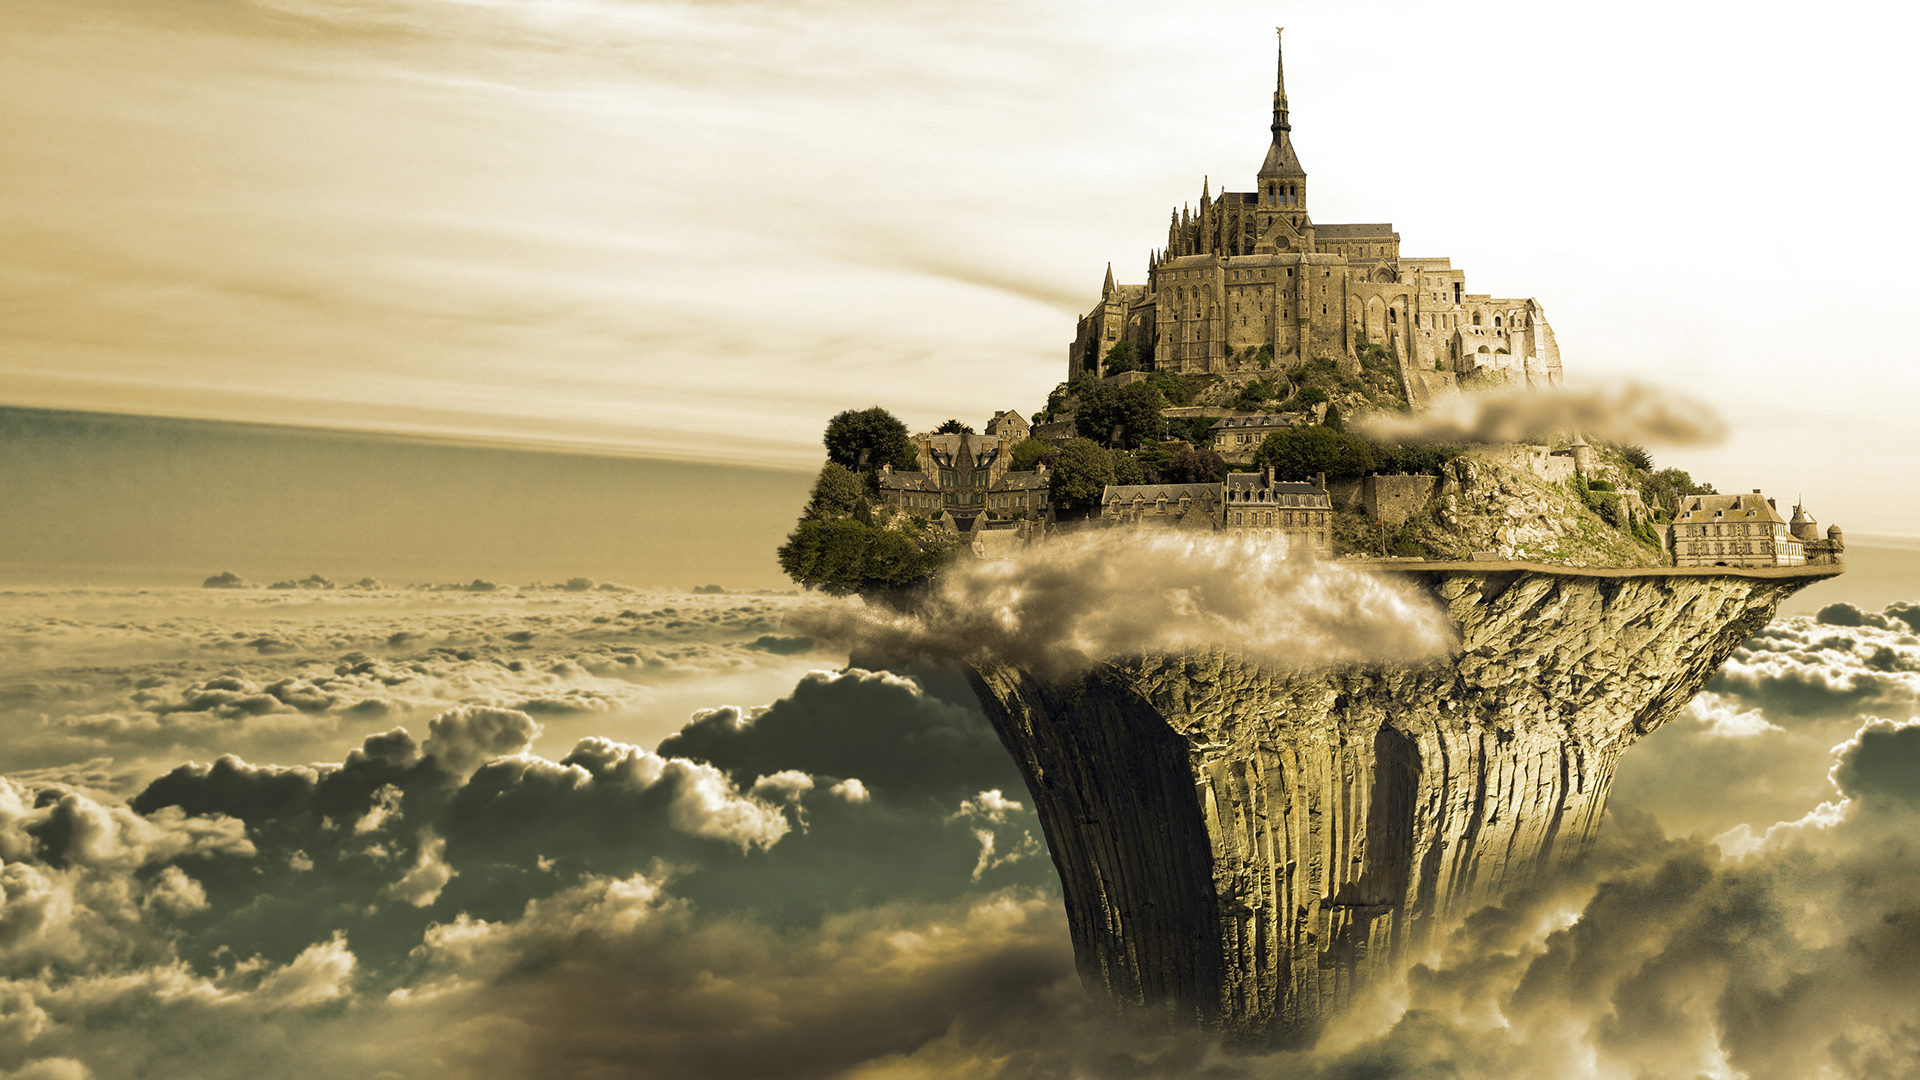 Fantasy - Castle  CGI Digital Art Island Surreal Cloud Sky Manipulation Fantasy Wallpaper